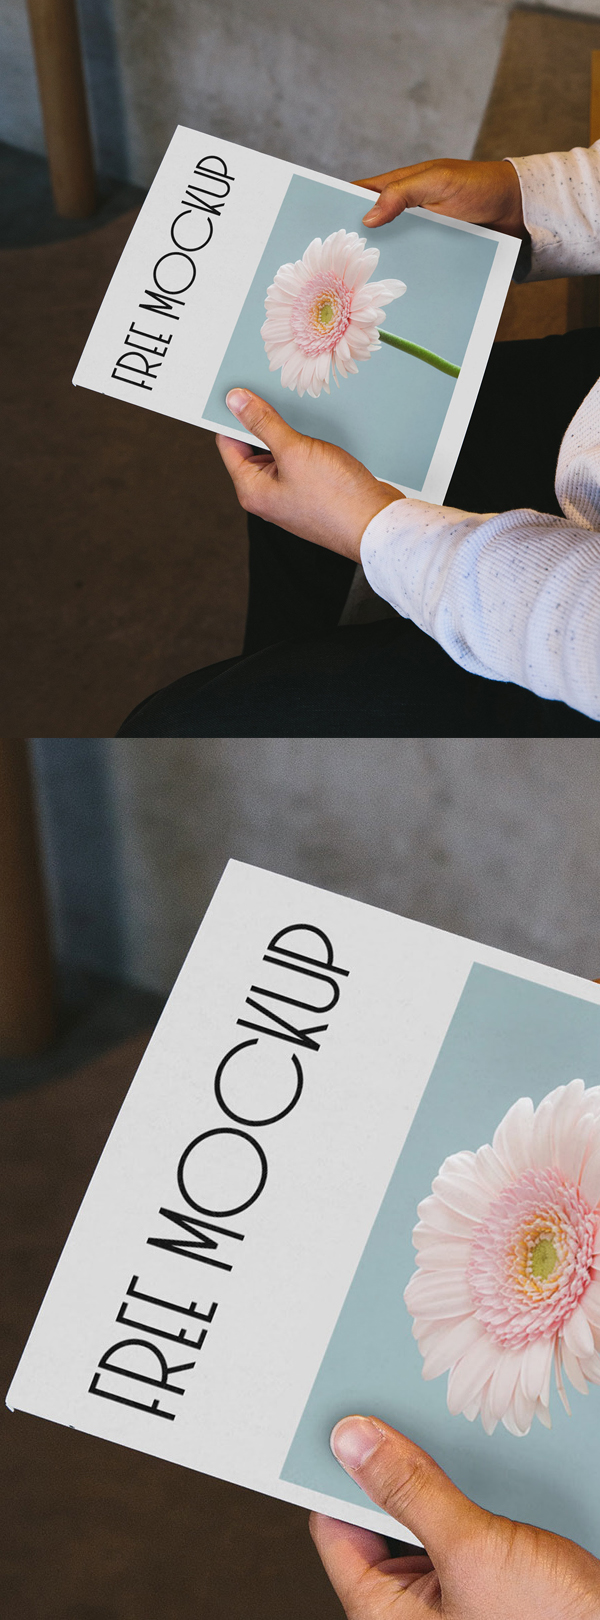 Free Magazine in Hands PSD Mockup